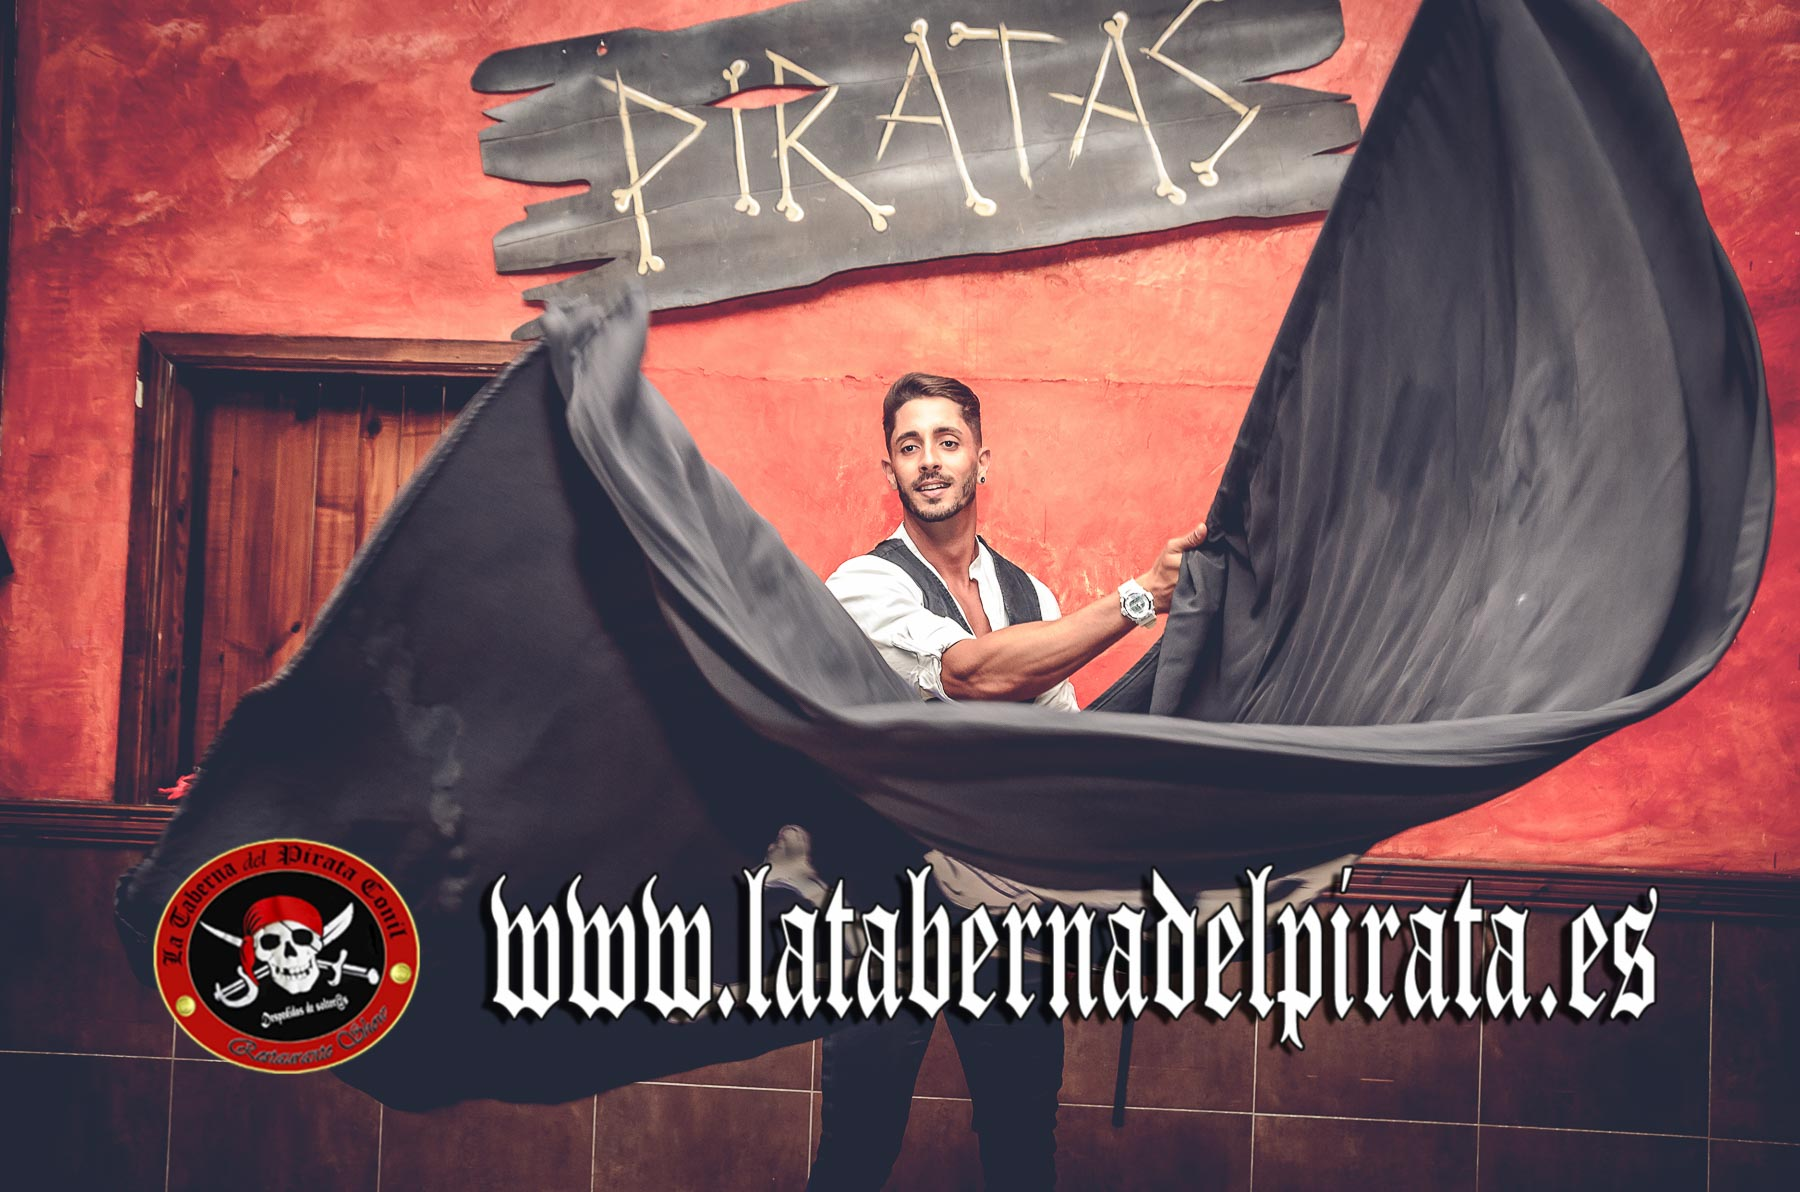 la taberna del pirata actor